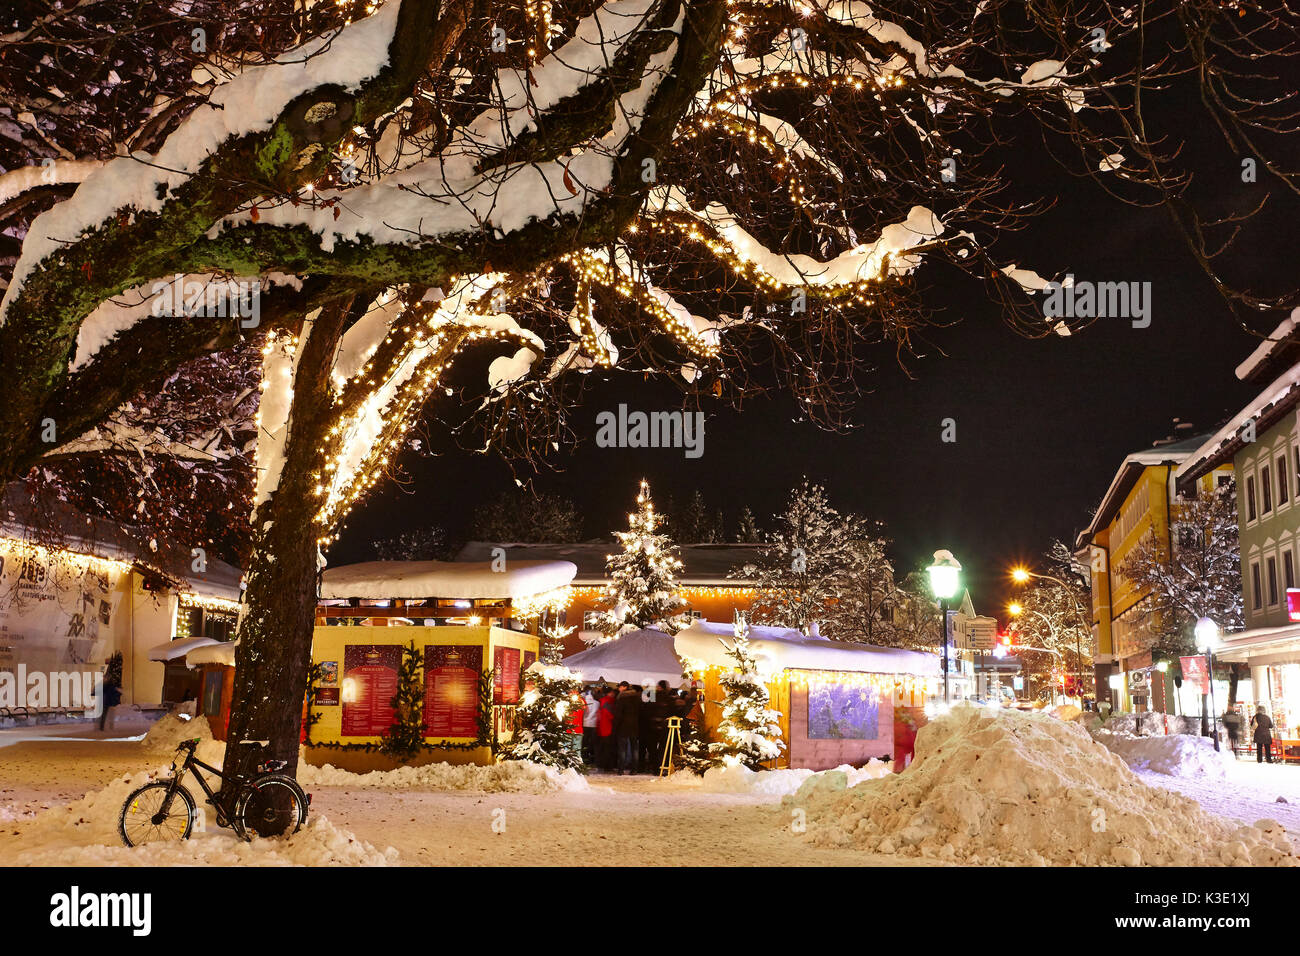 Garmisch Partenkirchen Weihnachtsmarkt 2019.Christmas Fair Garmisch Partenkirchen By Night Stock Photo